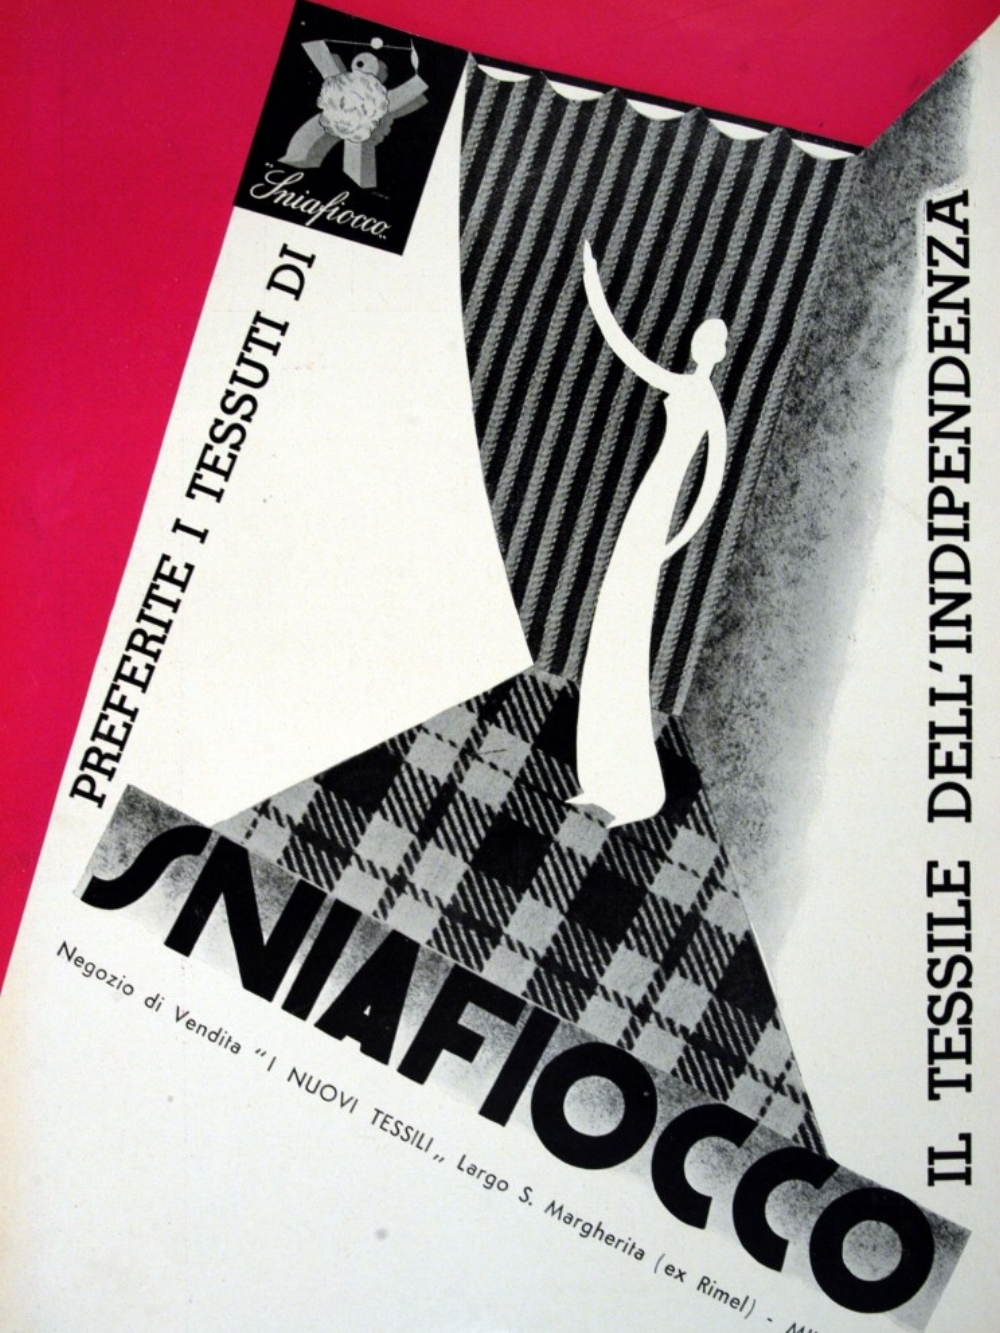 SniaFiocco, The Textile of Independence. From Lidel, June 1933, Biblioteca Nazionale, Rome.